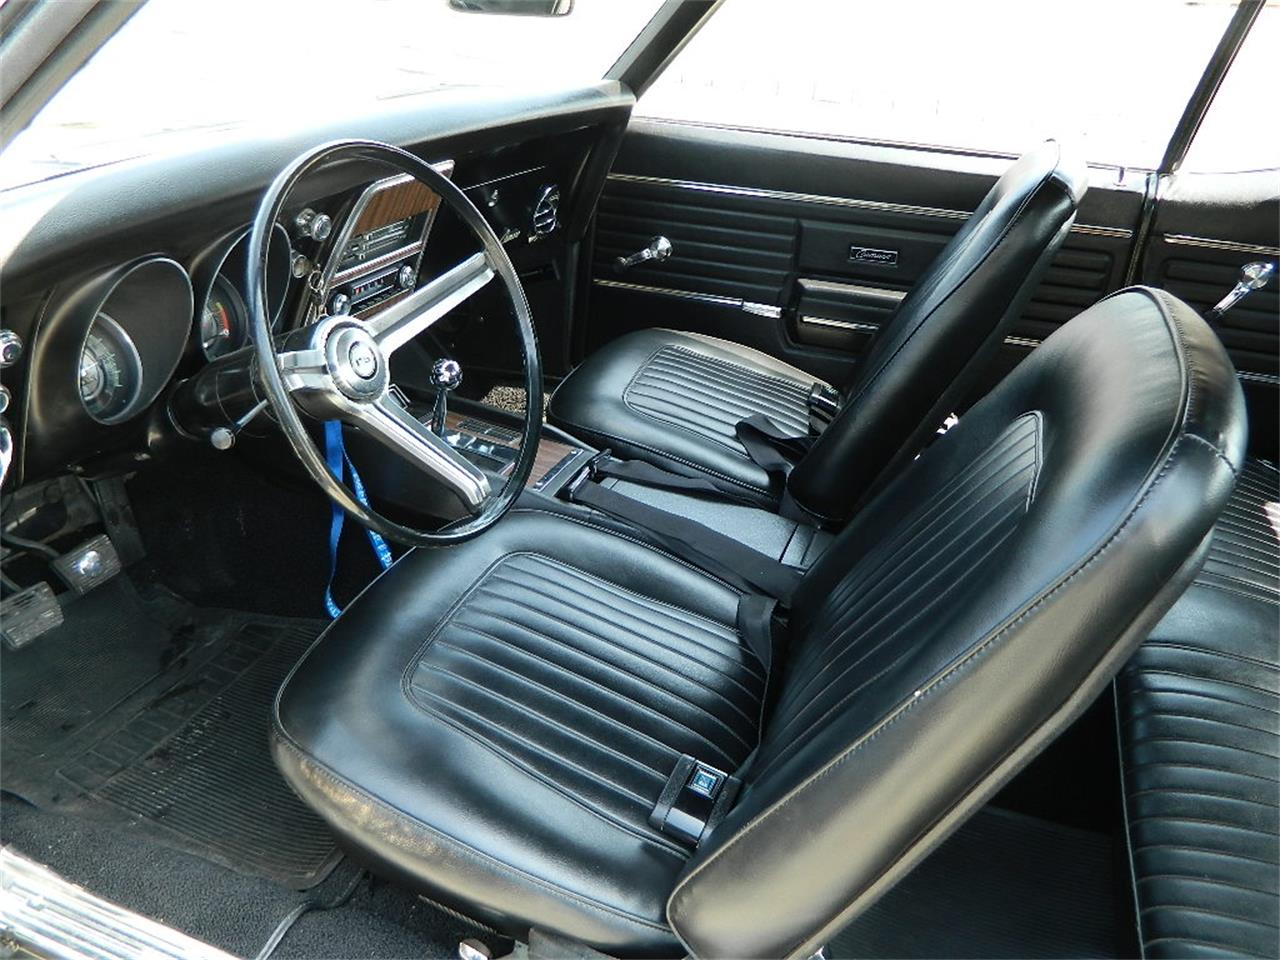 Large Picture of 1968 Camaro RS Z28 located in California - $89,000.00 - NOYI